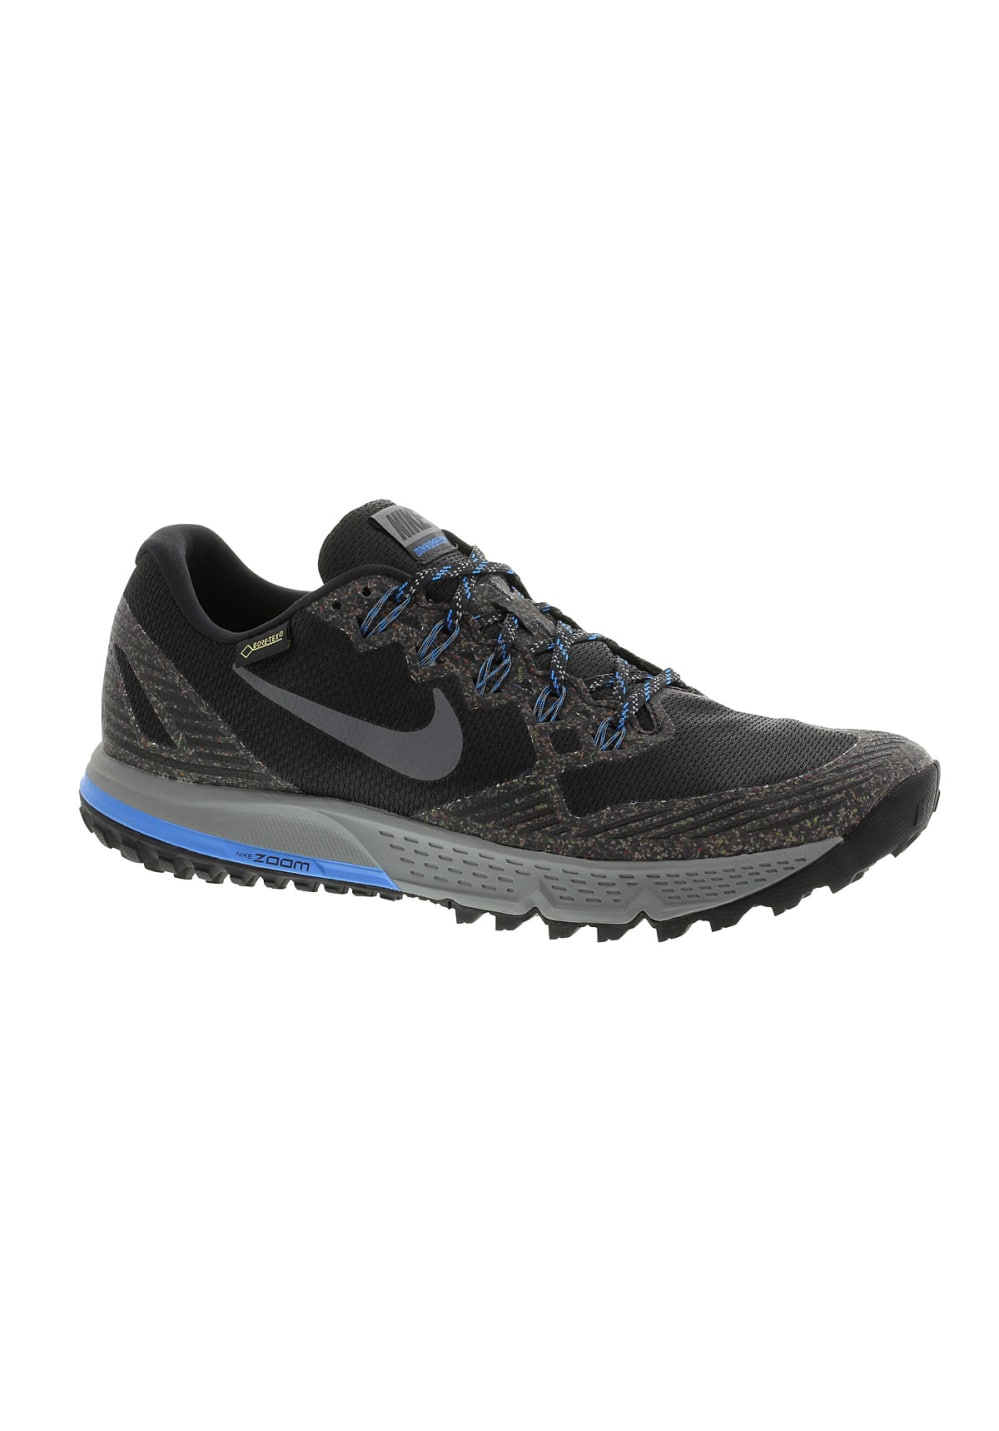 46c481e58913e Nike Air Zoom Wildhorse 3 GTX - Running shoes for Men - Black